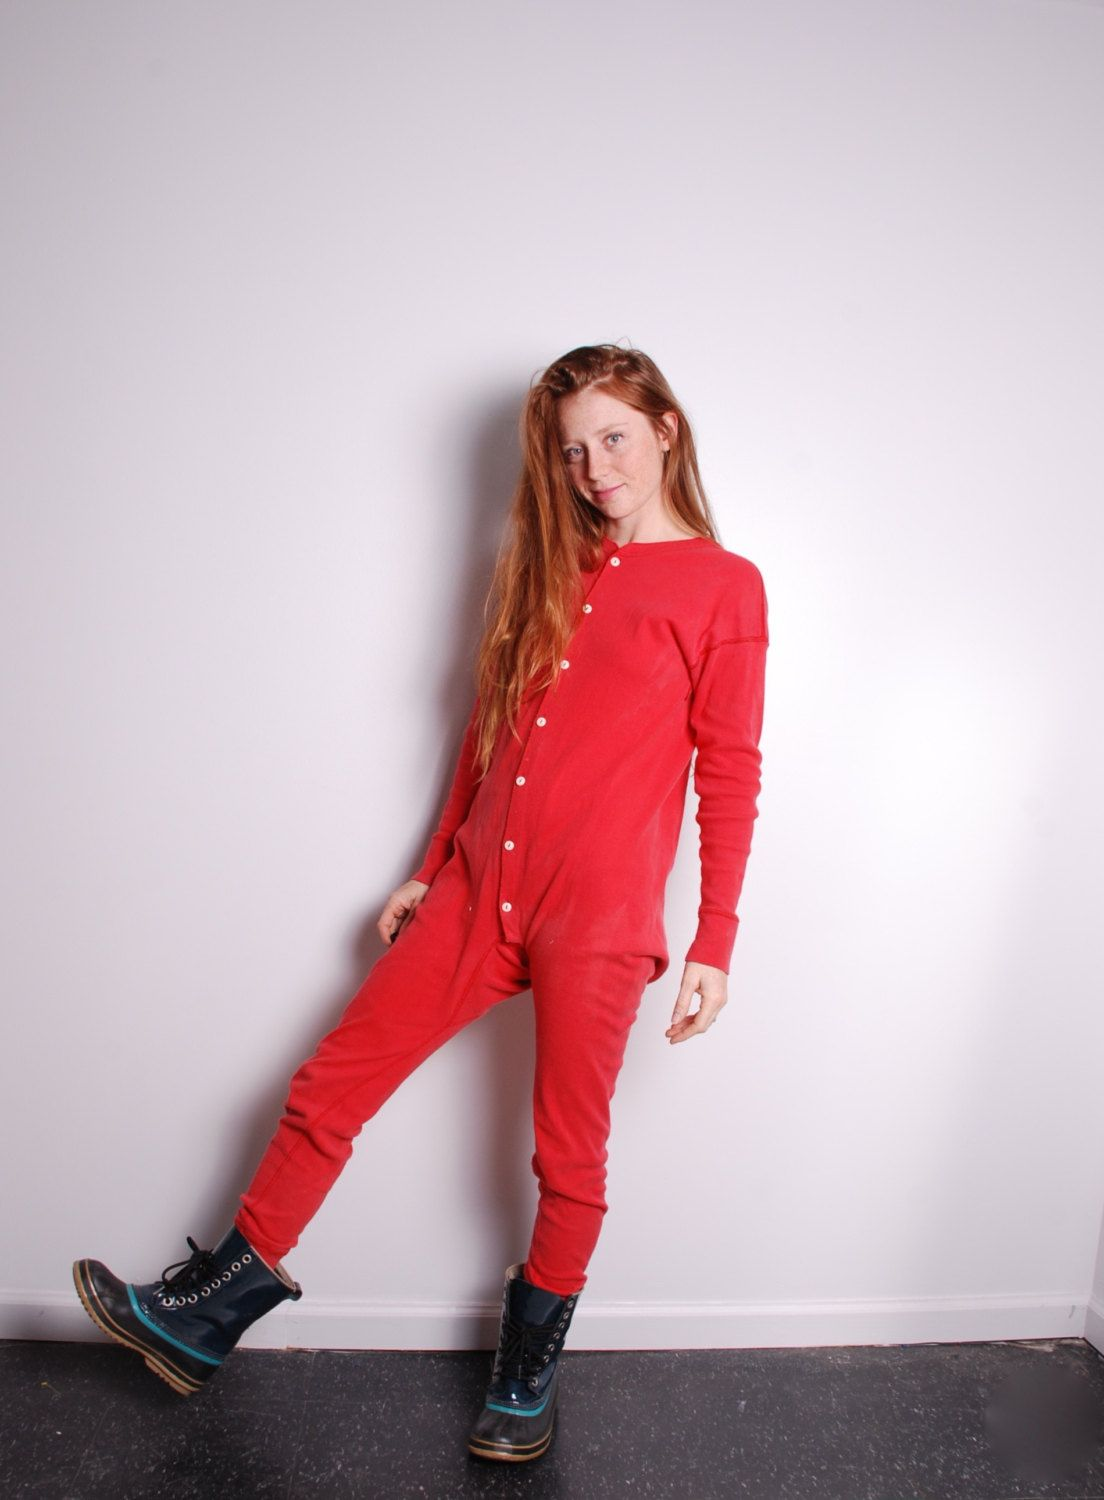 e65792c14db49 70s large red union suit long johns thermals underwear button up ...